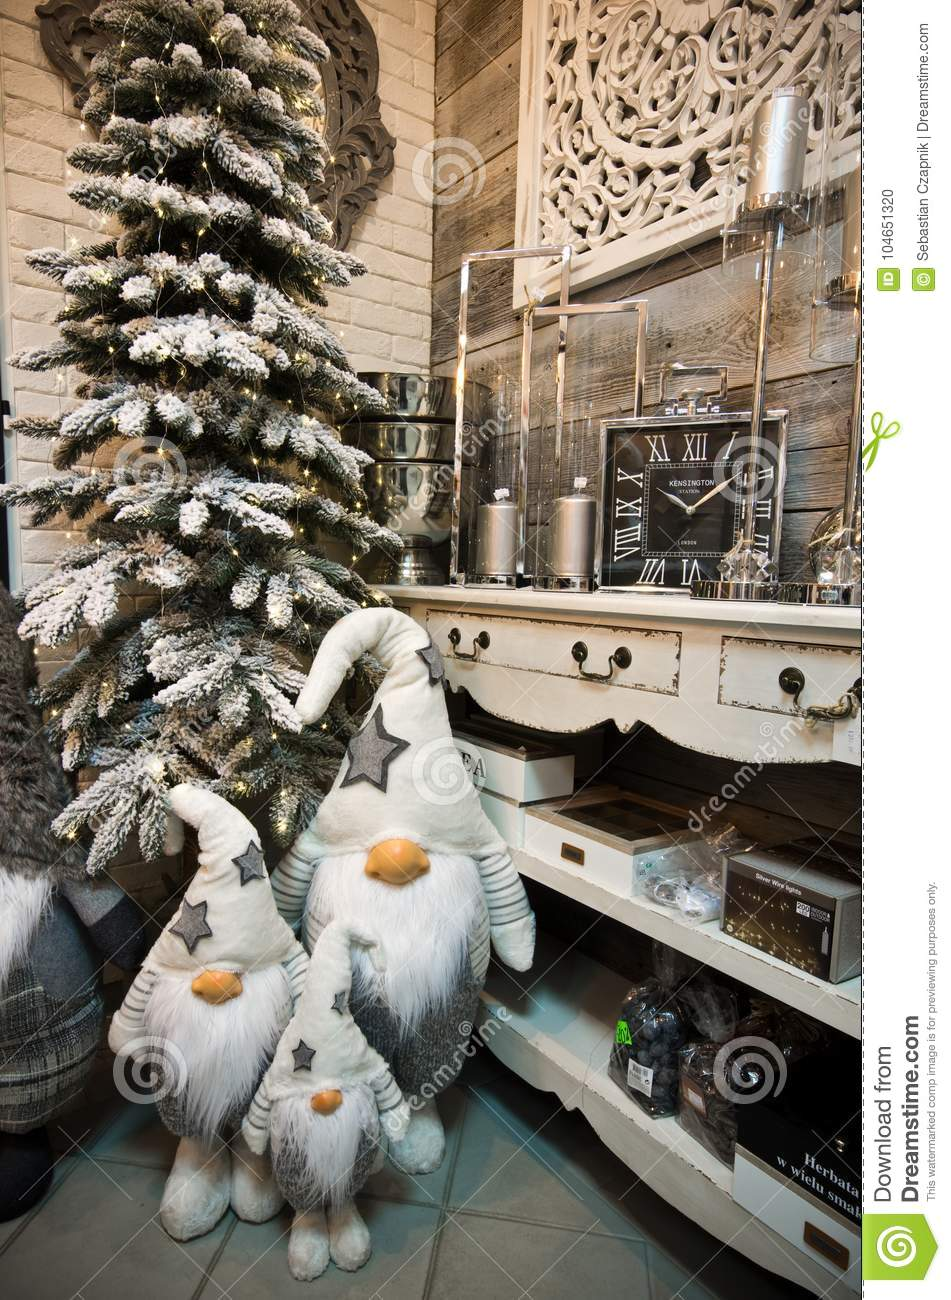 Christmas Business Decorations.Interior Of A Home Articles Shop With Christmas Decoratoins